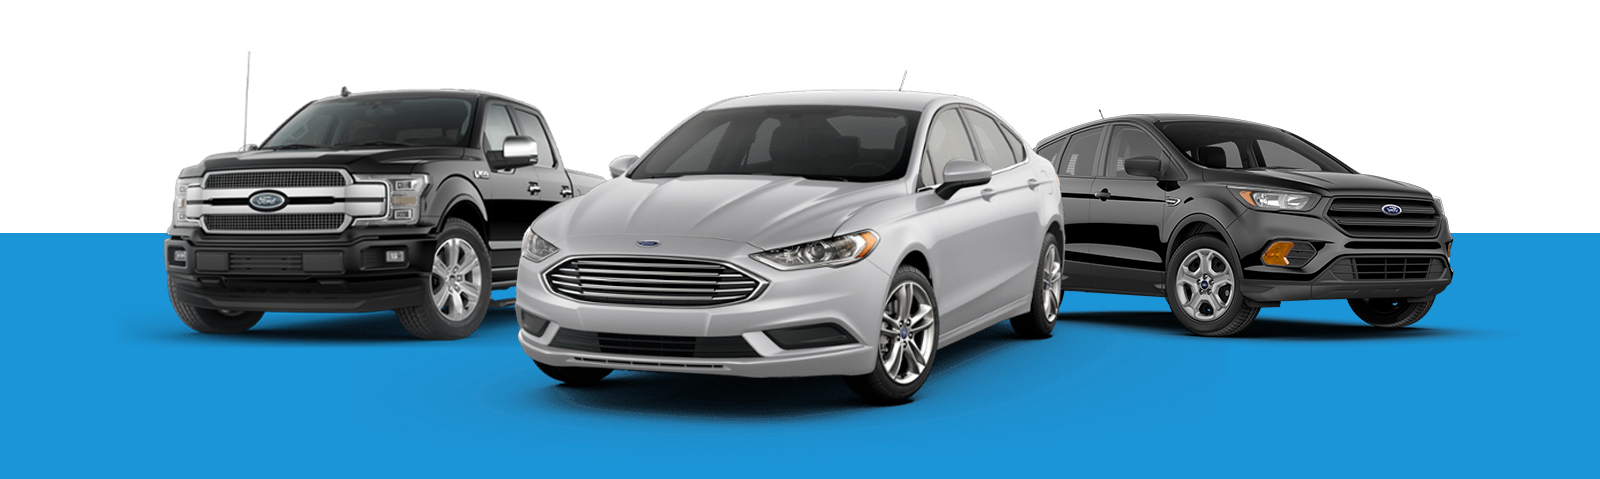 Buy or Lease a New Car Finance a New Ford near White Lake, MI